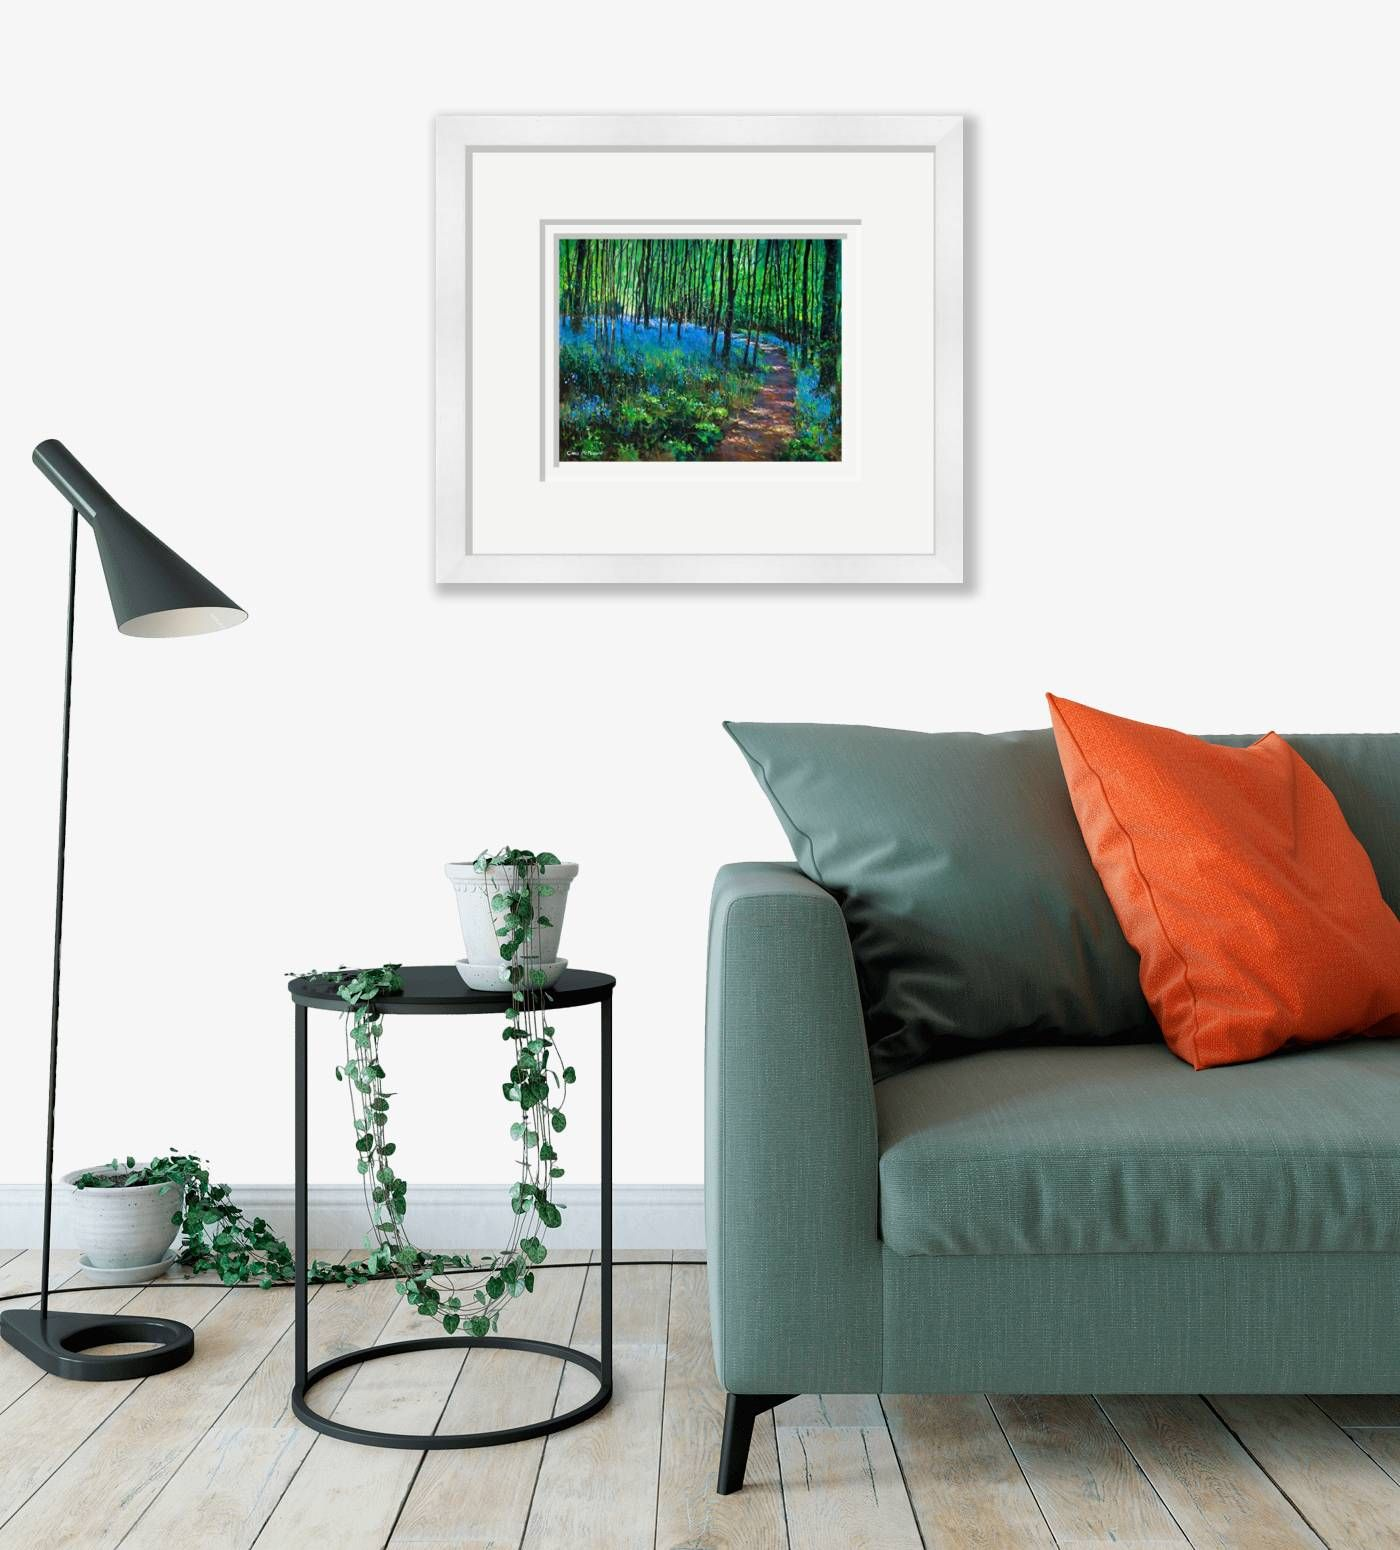 Large framed - Bluebell Wood - 351 by Chris McMorrow